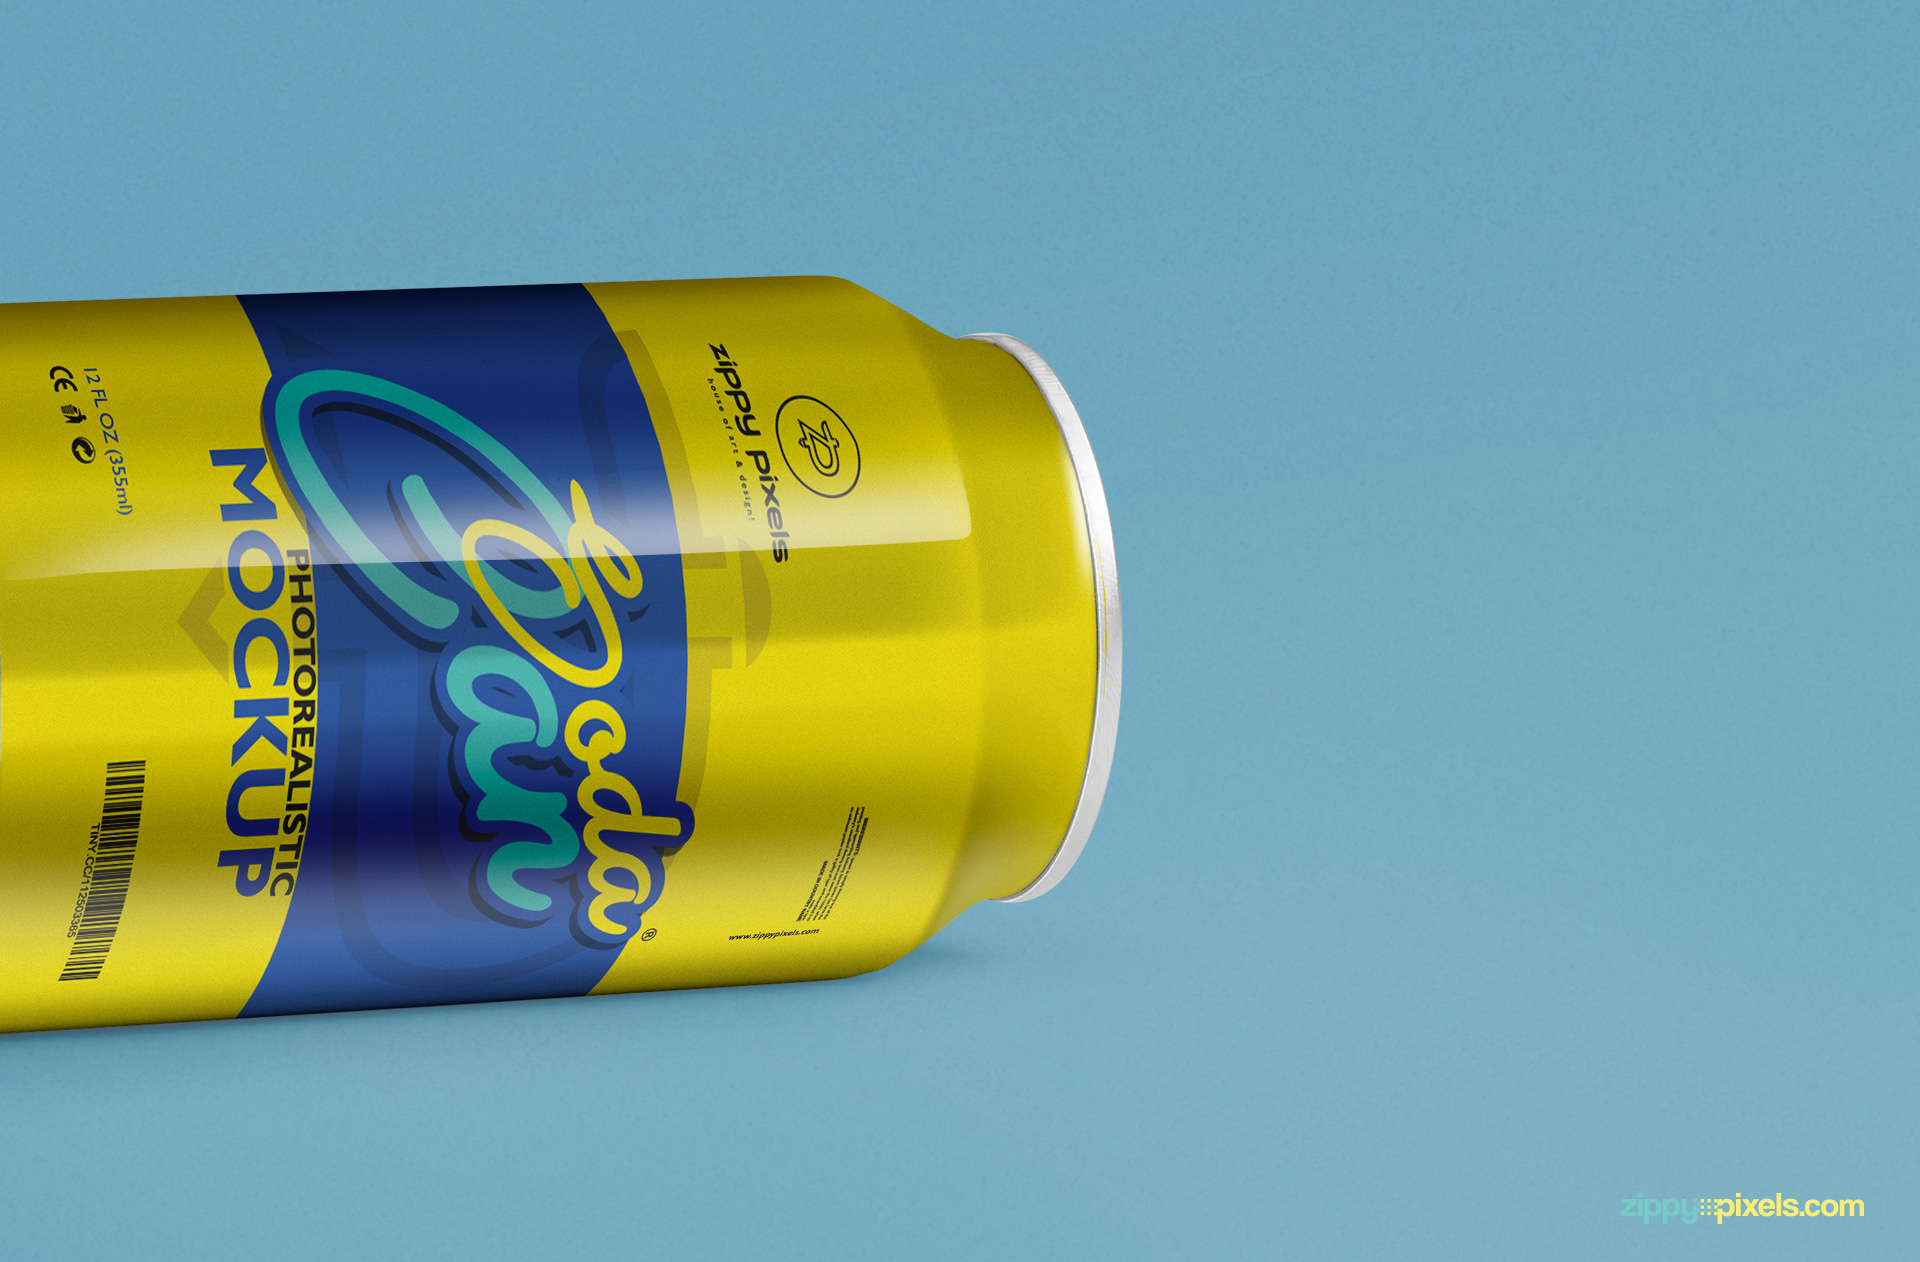 free soft drink can psd mockup for packaging and labeling designs